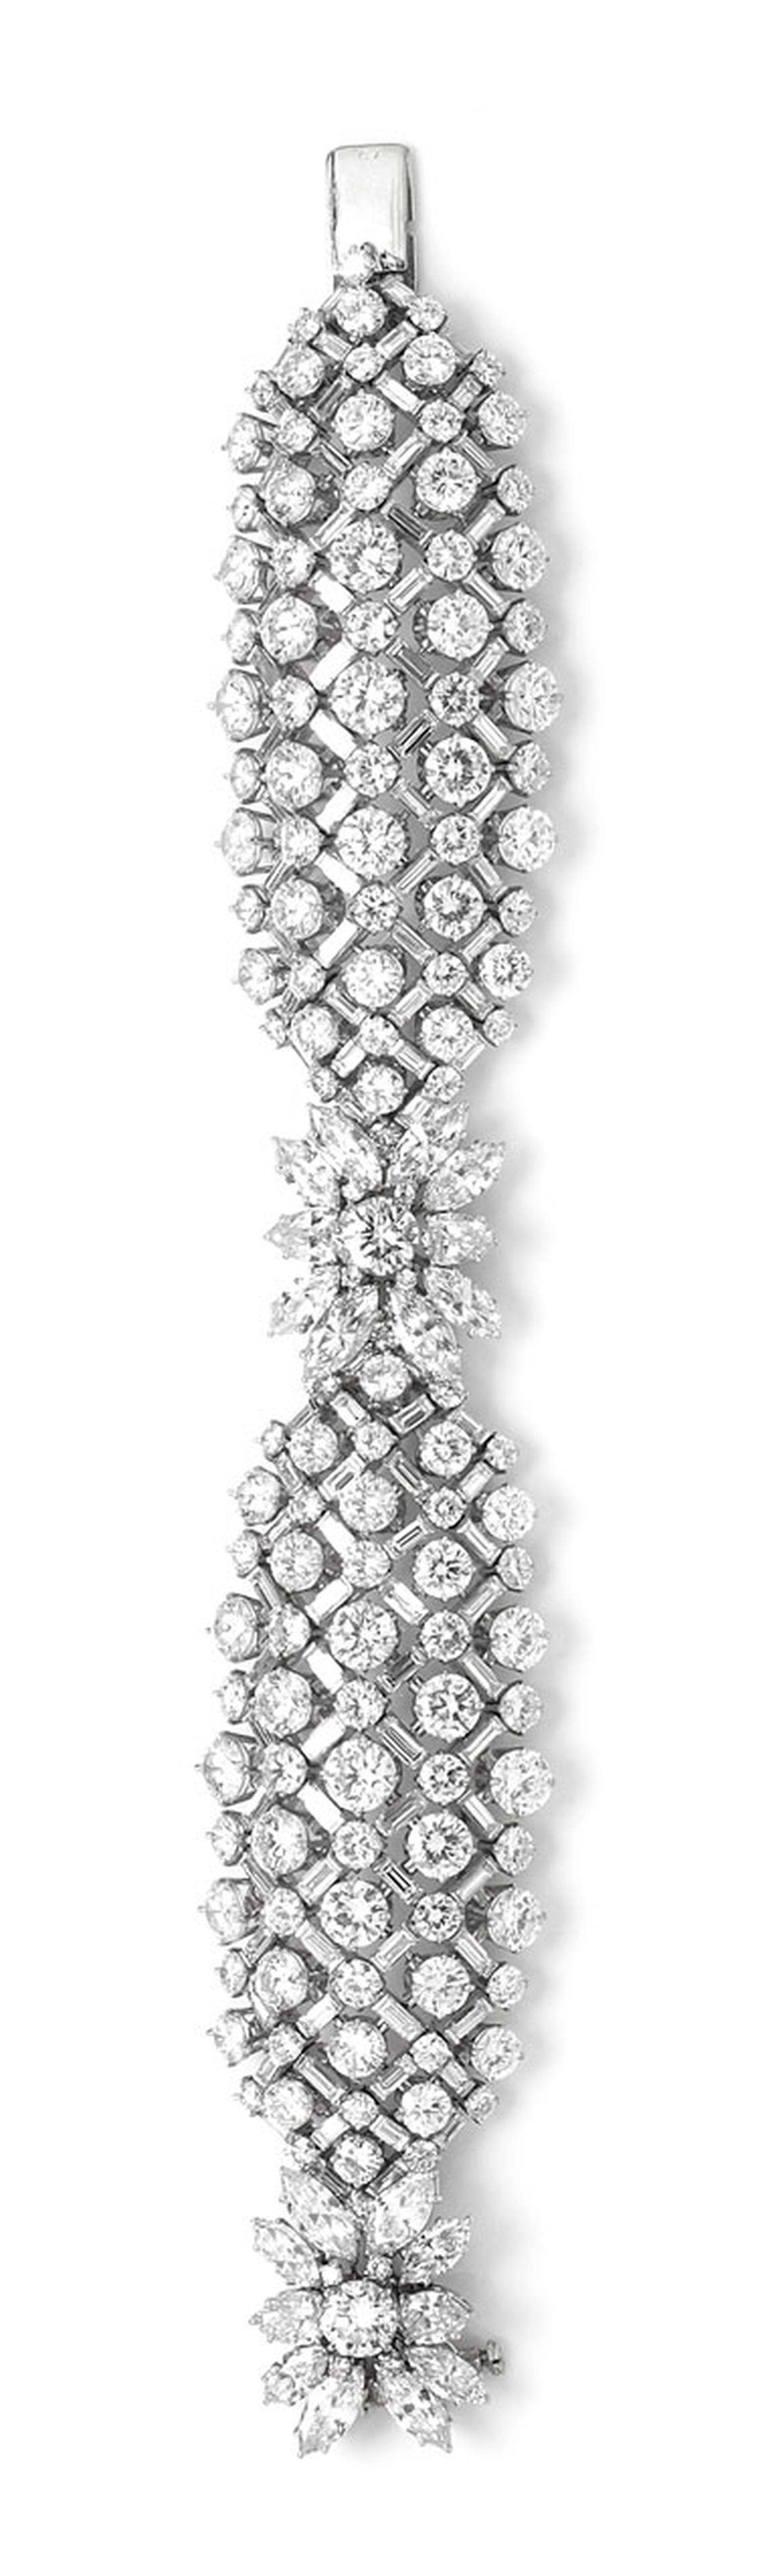 Harry-Winston-vintage-1959-diamond-lattice-bracelet-58ct.jpg